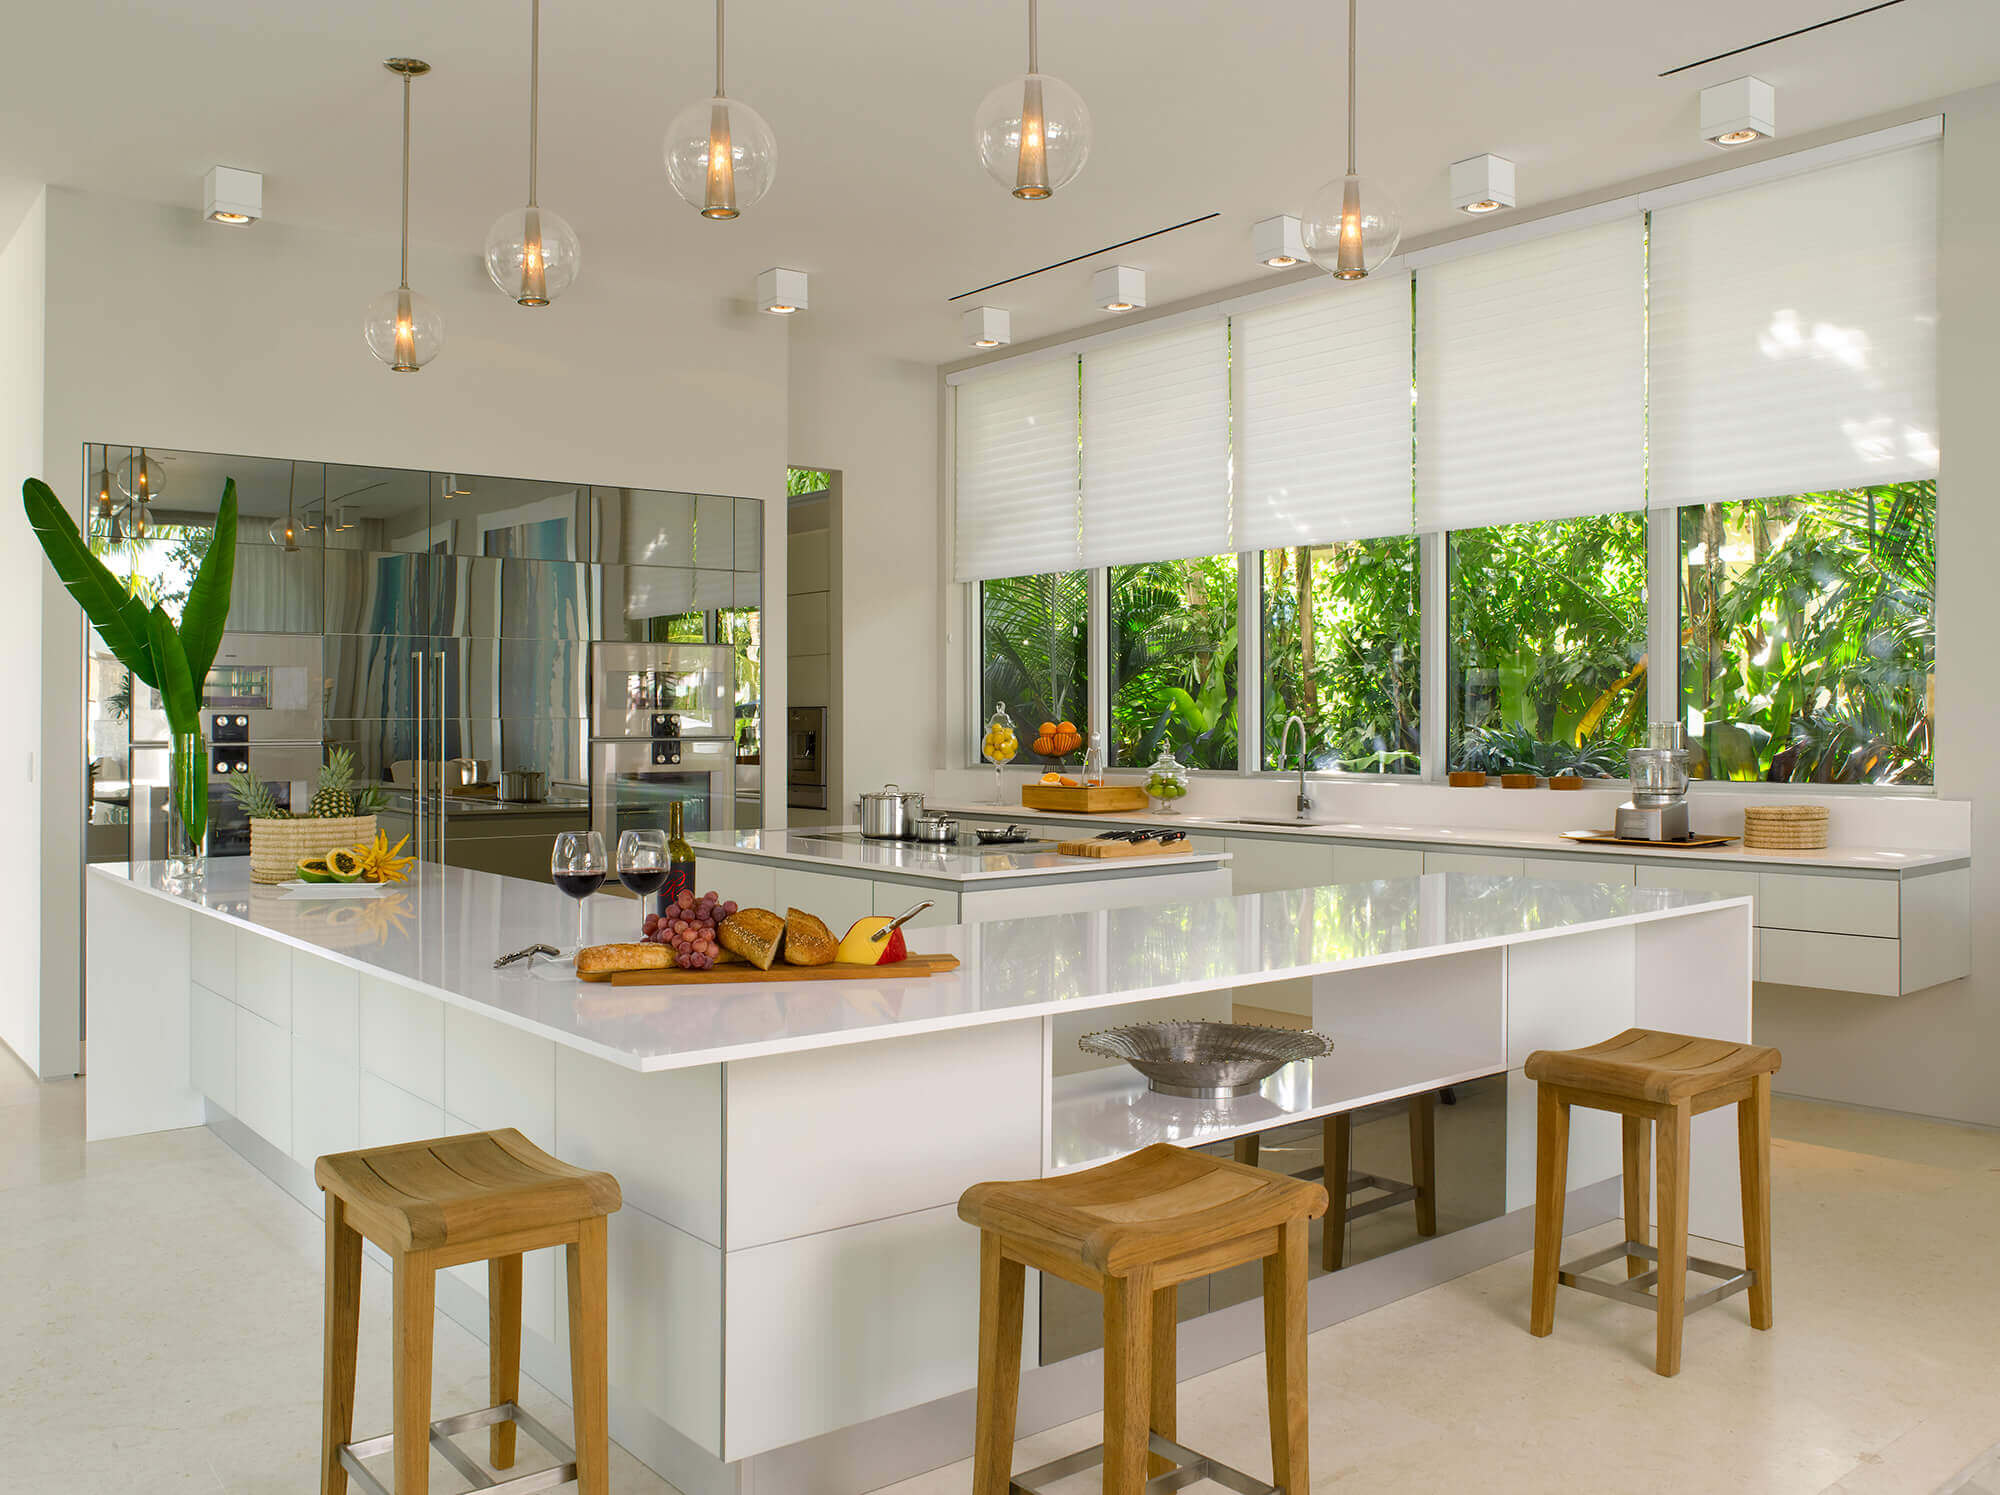 of the modern kitchen design with windows include glass windows